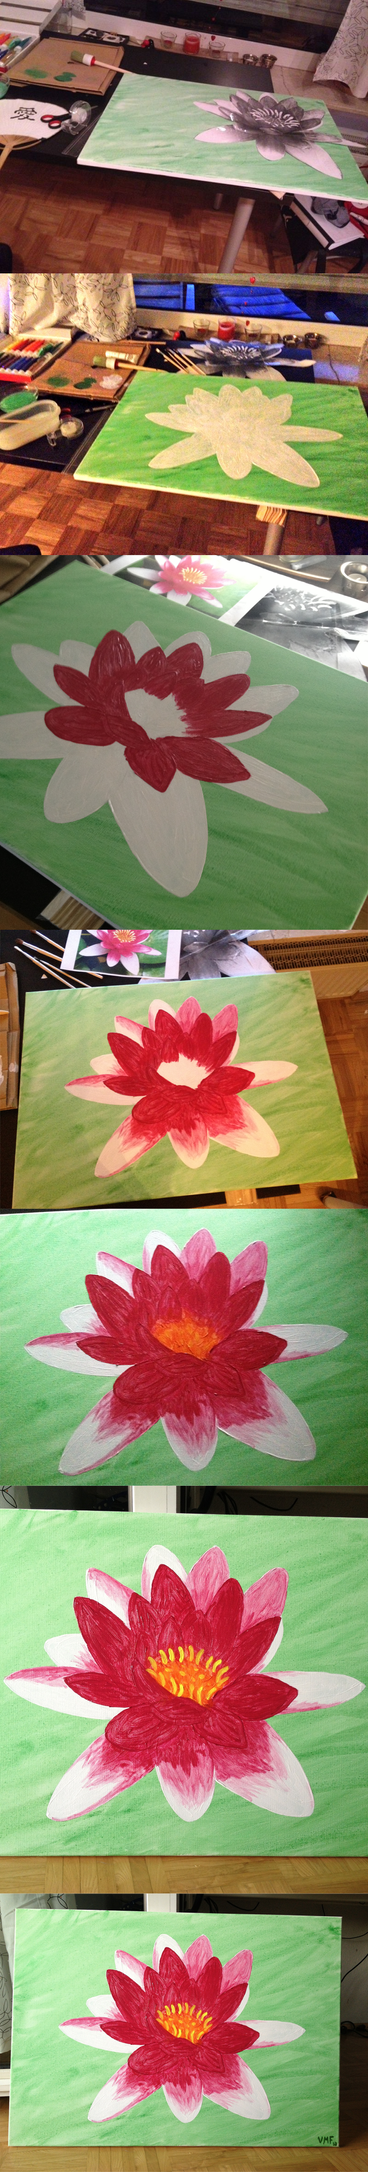 Lotus - the way to the finished piece by Kiffy25081987